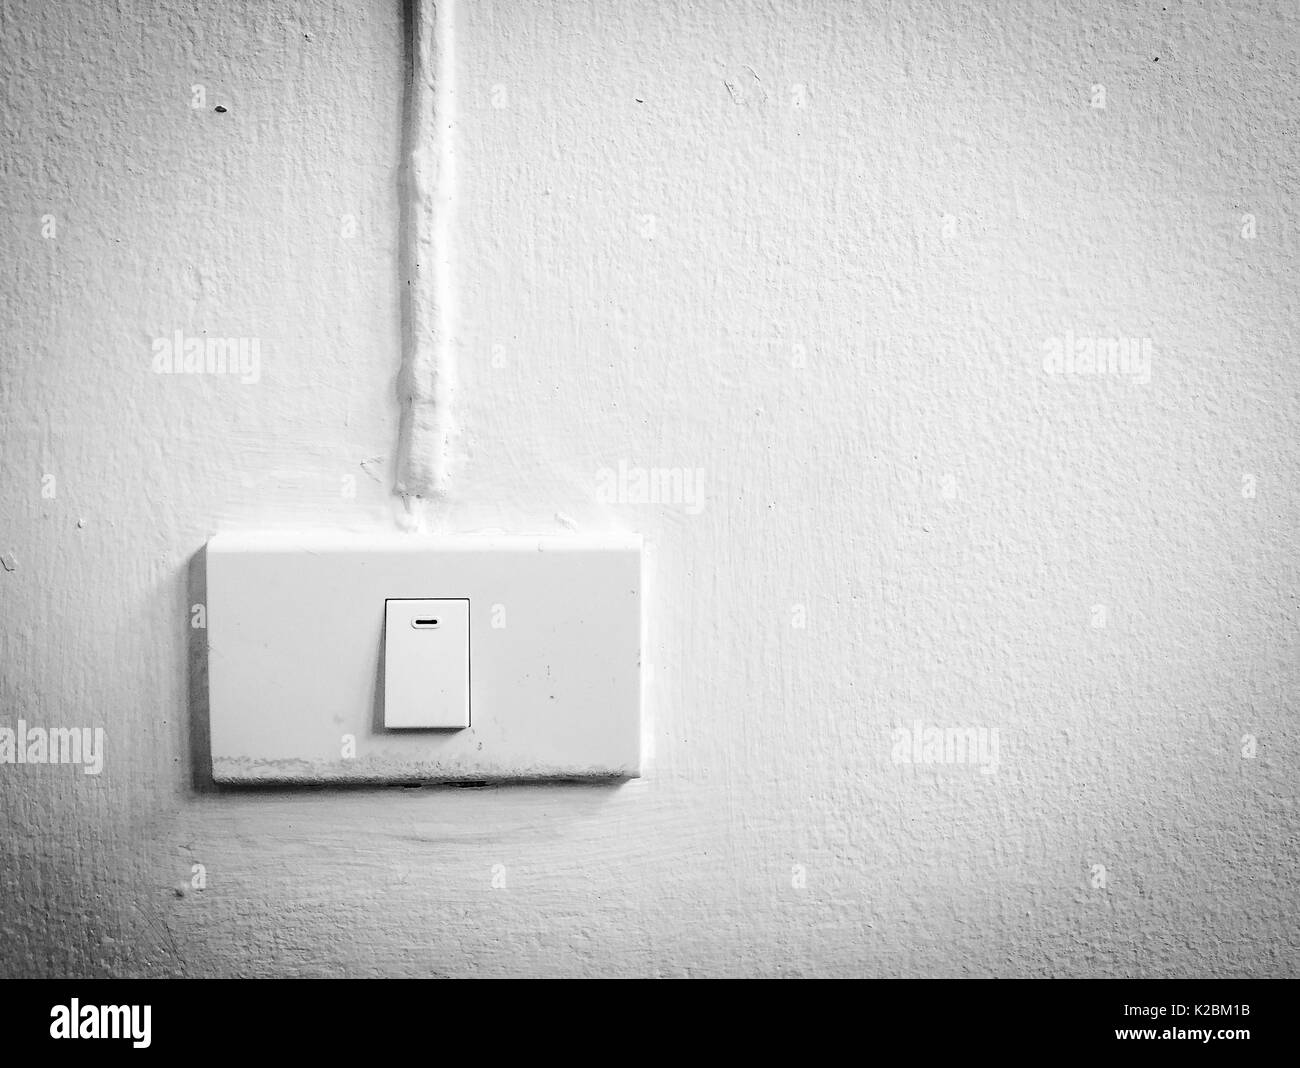 White electric switch on wall - Stock Image